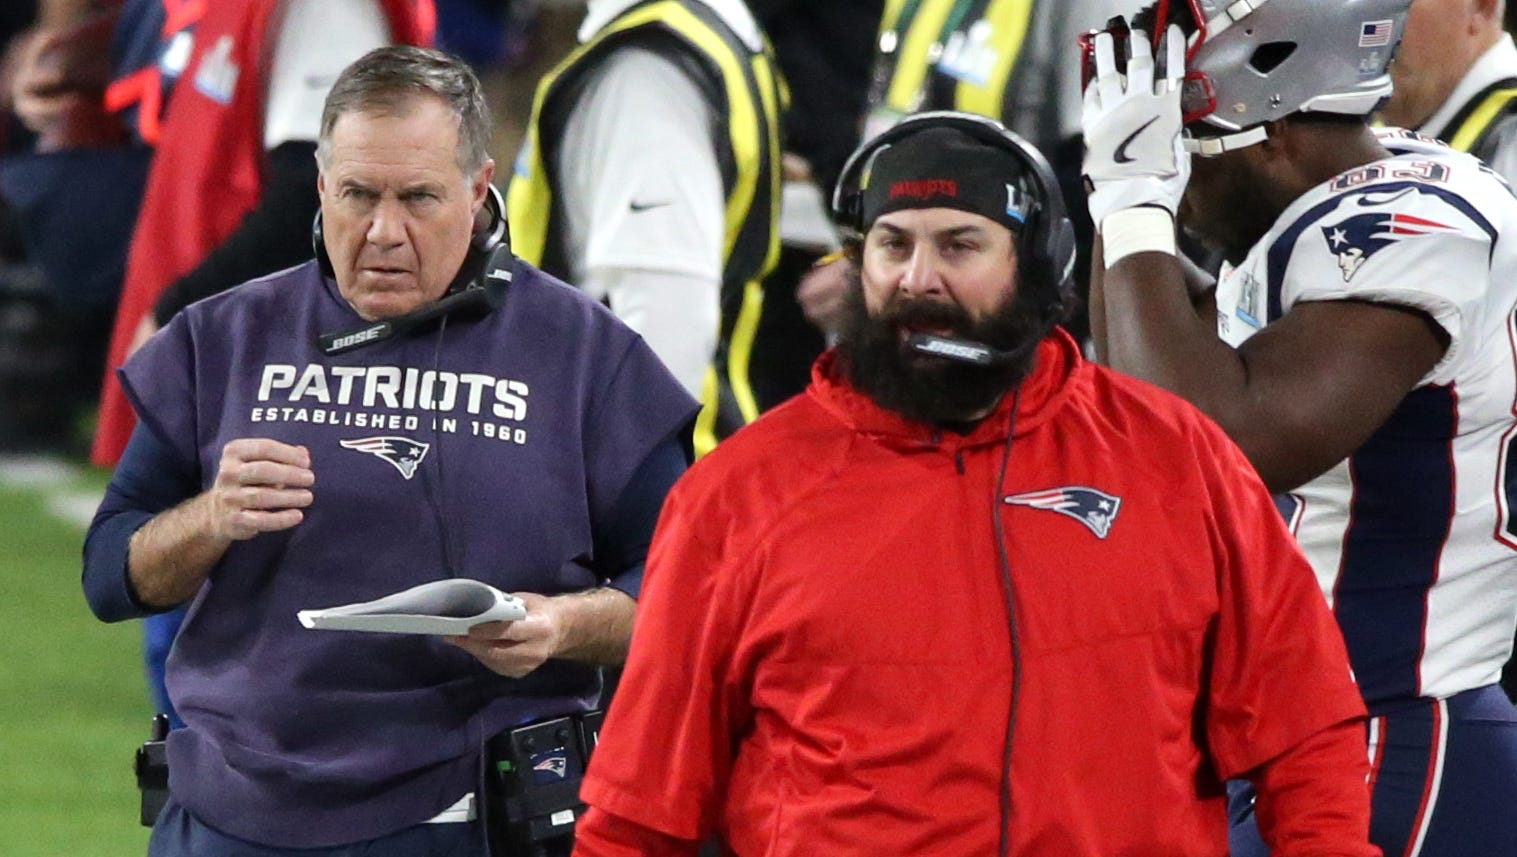 Matt Patricia (right) and Bill Belichick during the third quarter of the Patriots' 41-33 loss to the Eagles in Super Bowl LII at U.S. Bank Stadium on Sunday, Feb. 4, 2018.